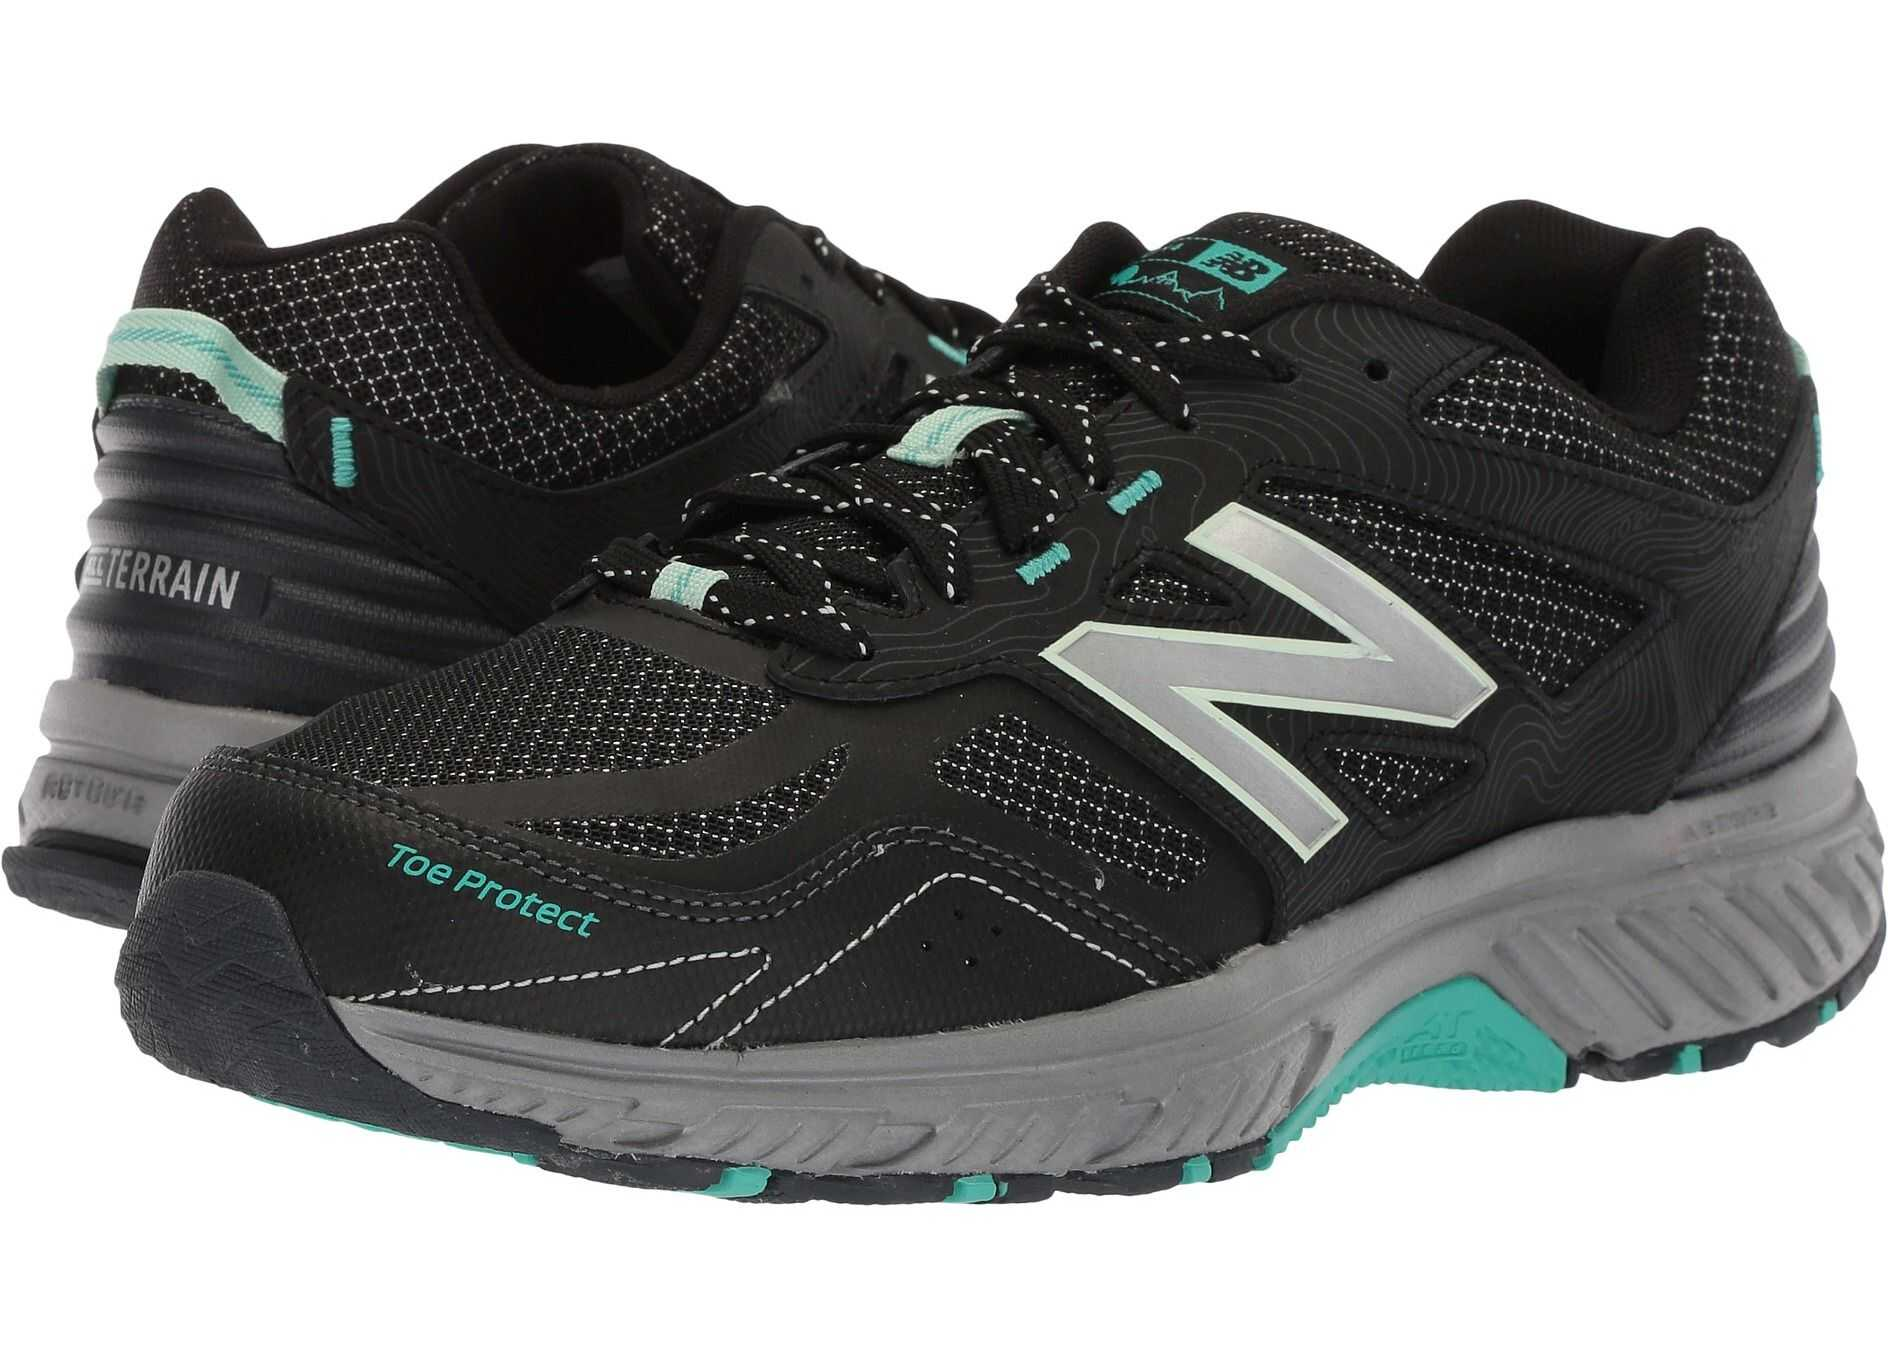 New Balance 510v4 Black/Outerspace